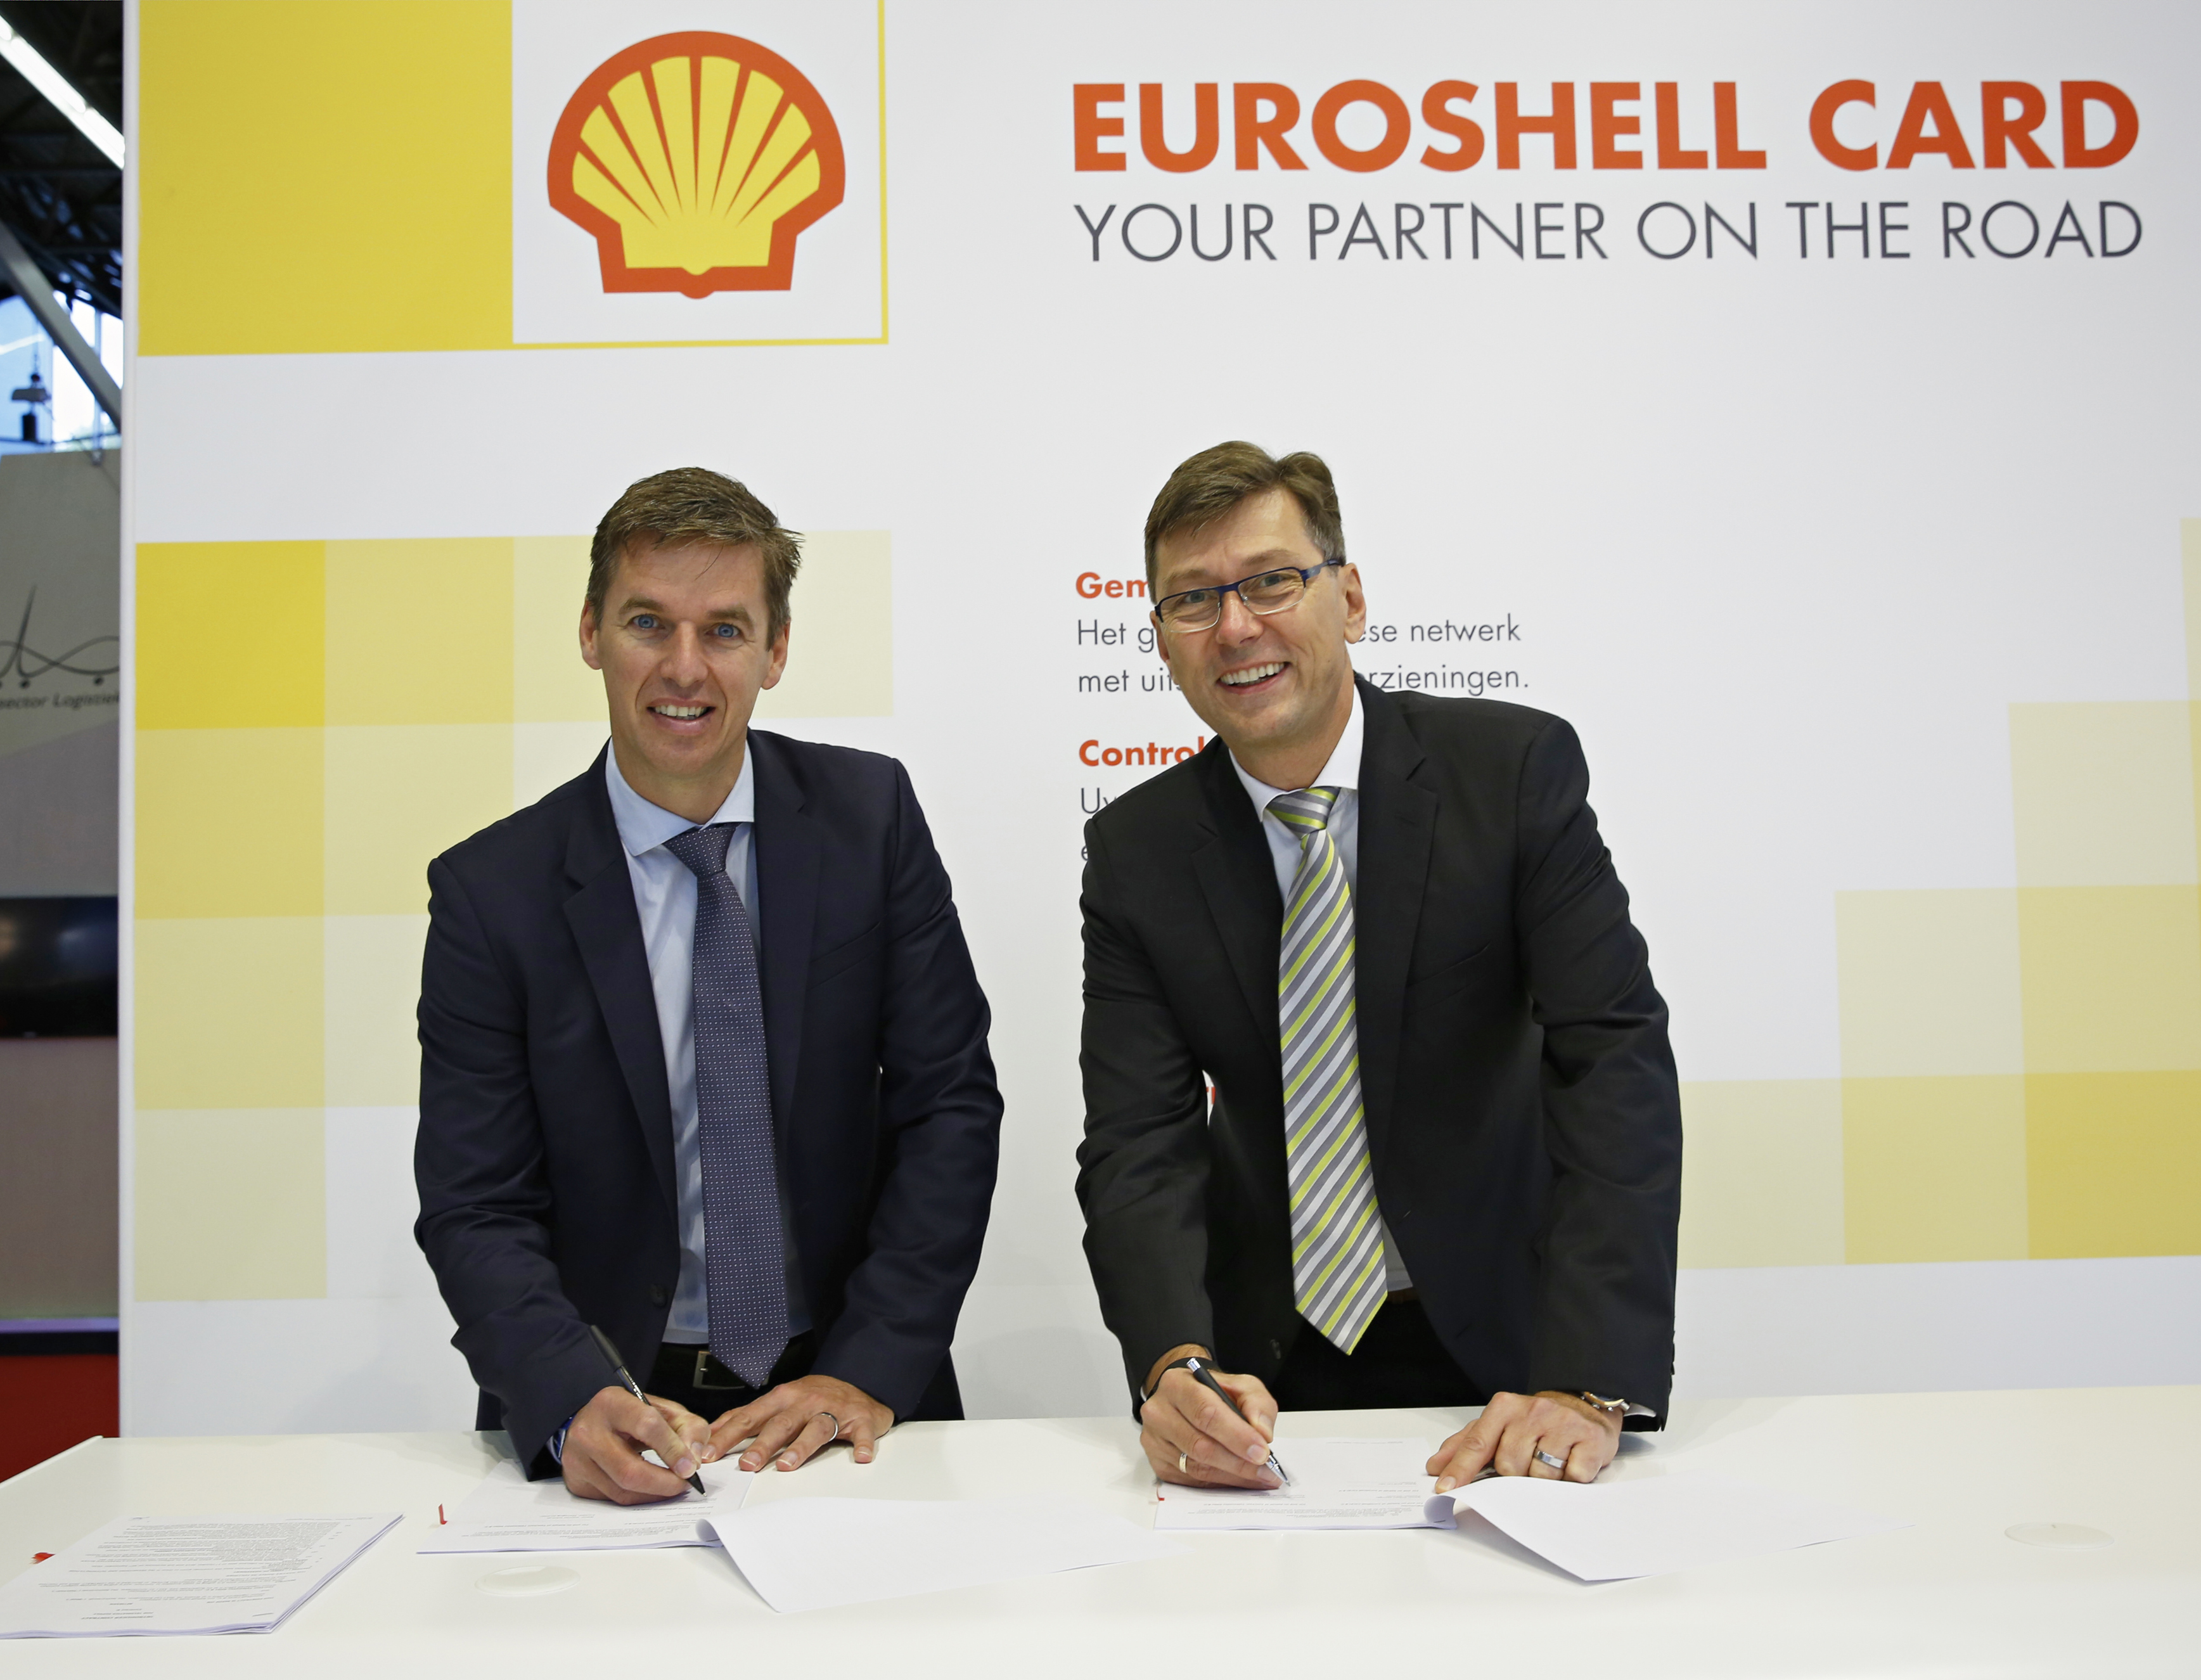 tomtom telematics and shell join forces to help business fleets cut fuel costs and carbon emissions business wire - Shell Fleet Card